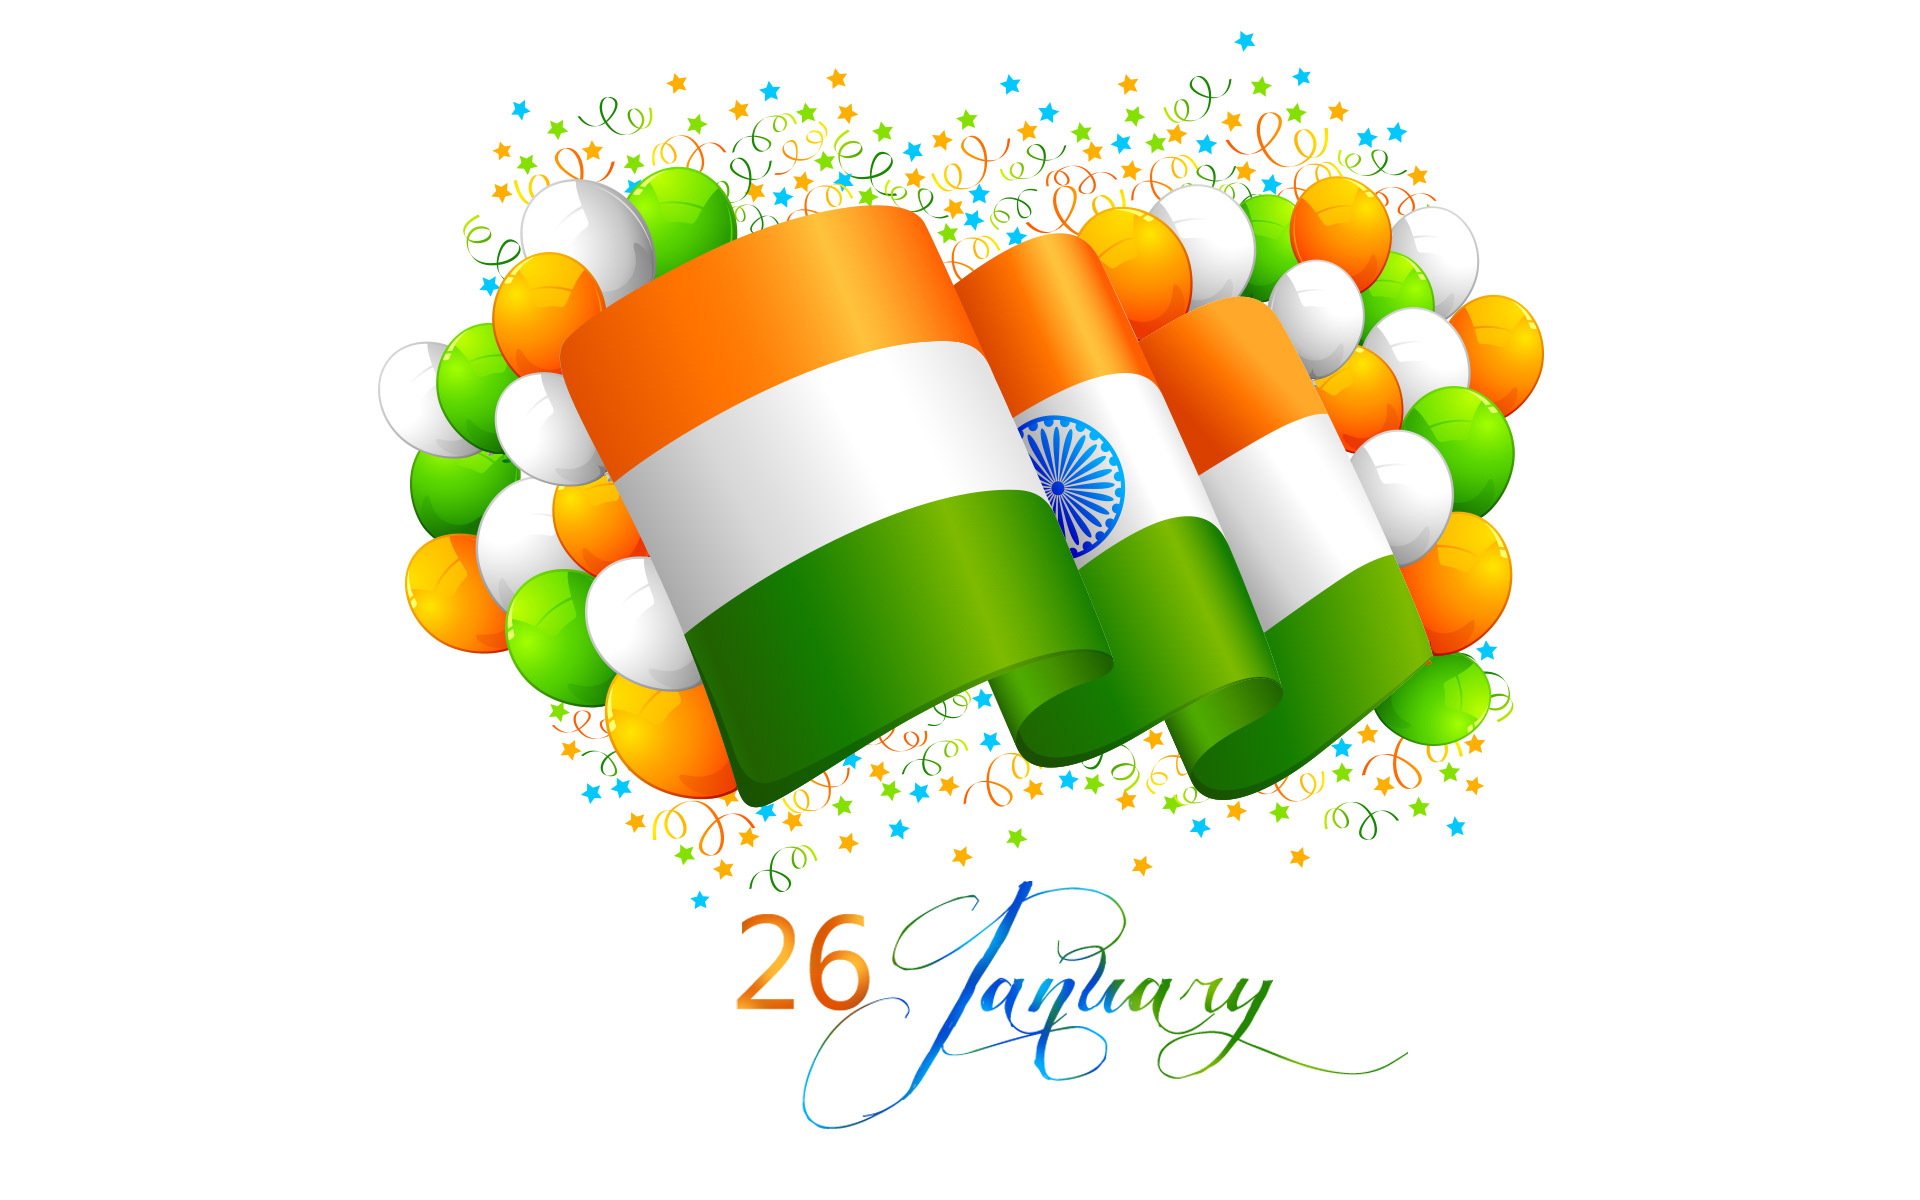 Indian flag wallpapers hd images free download polesmag for India wallpaper 3d